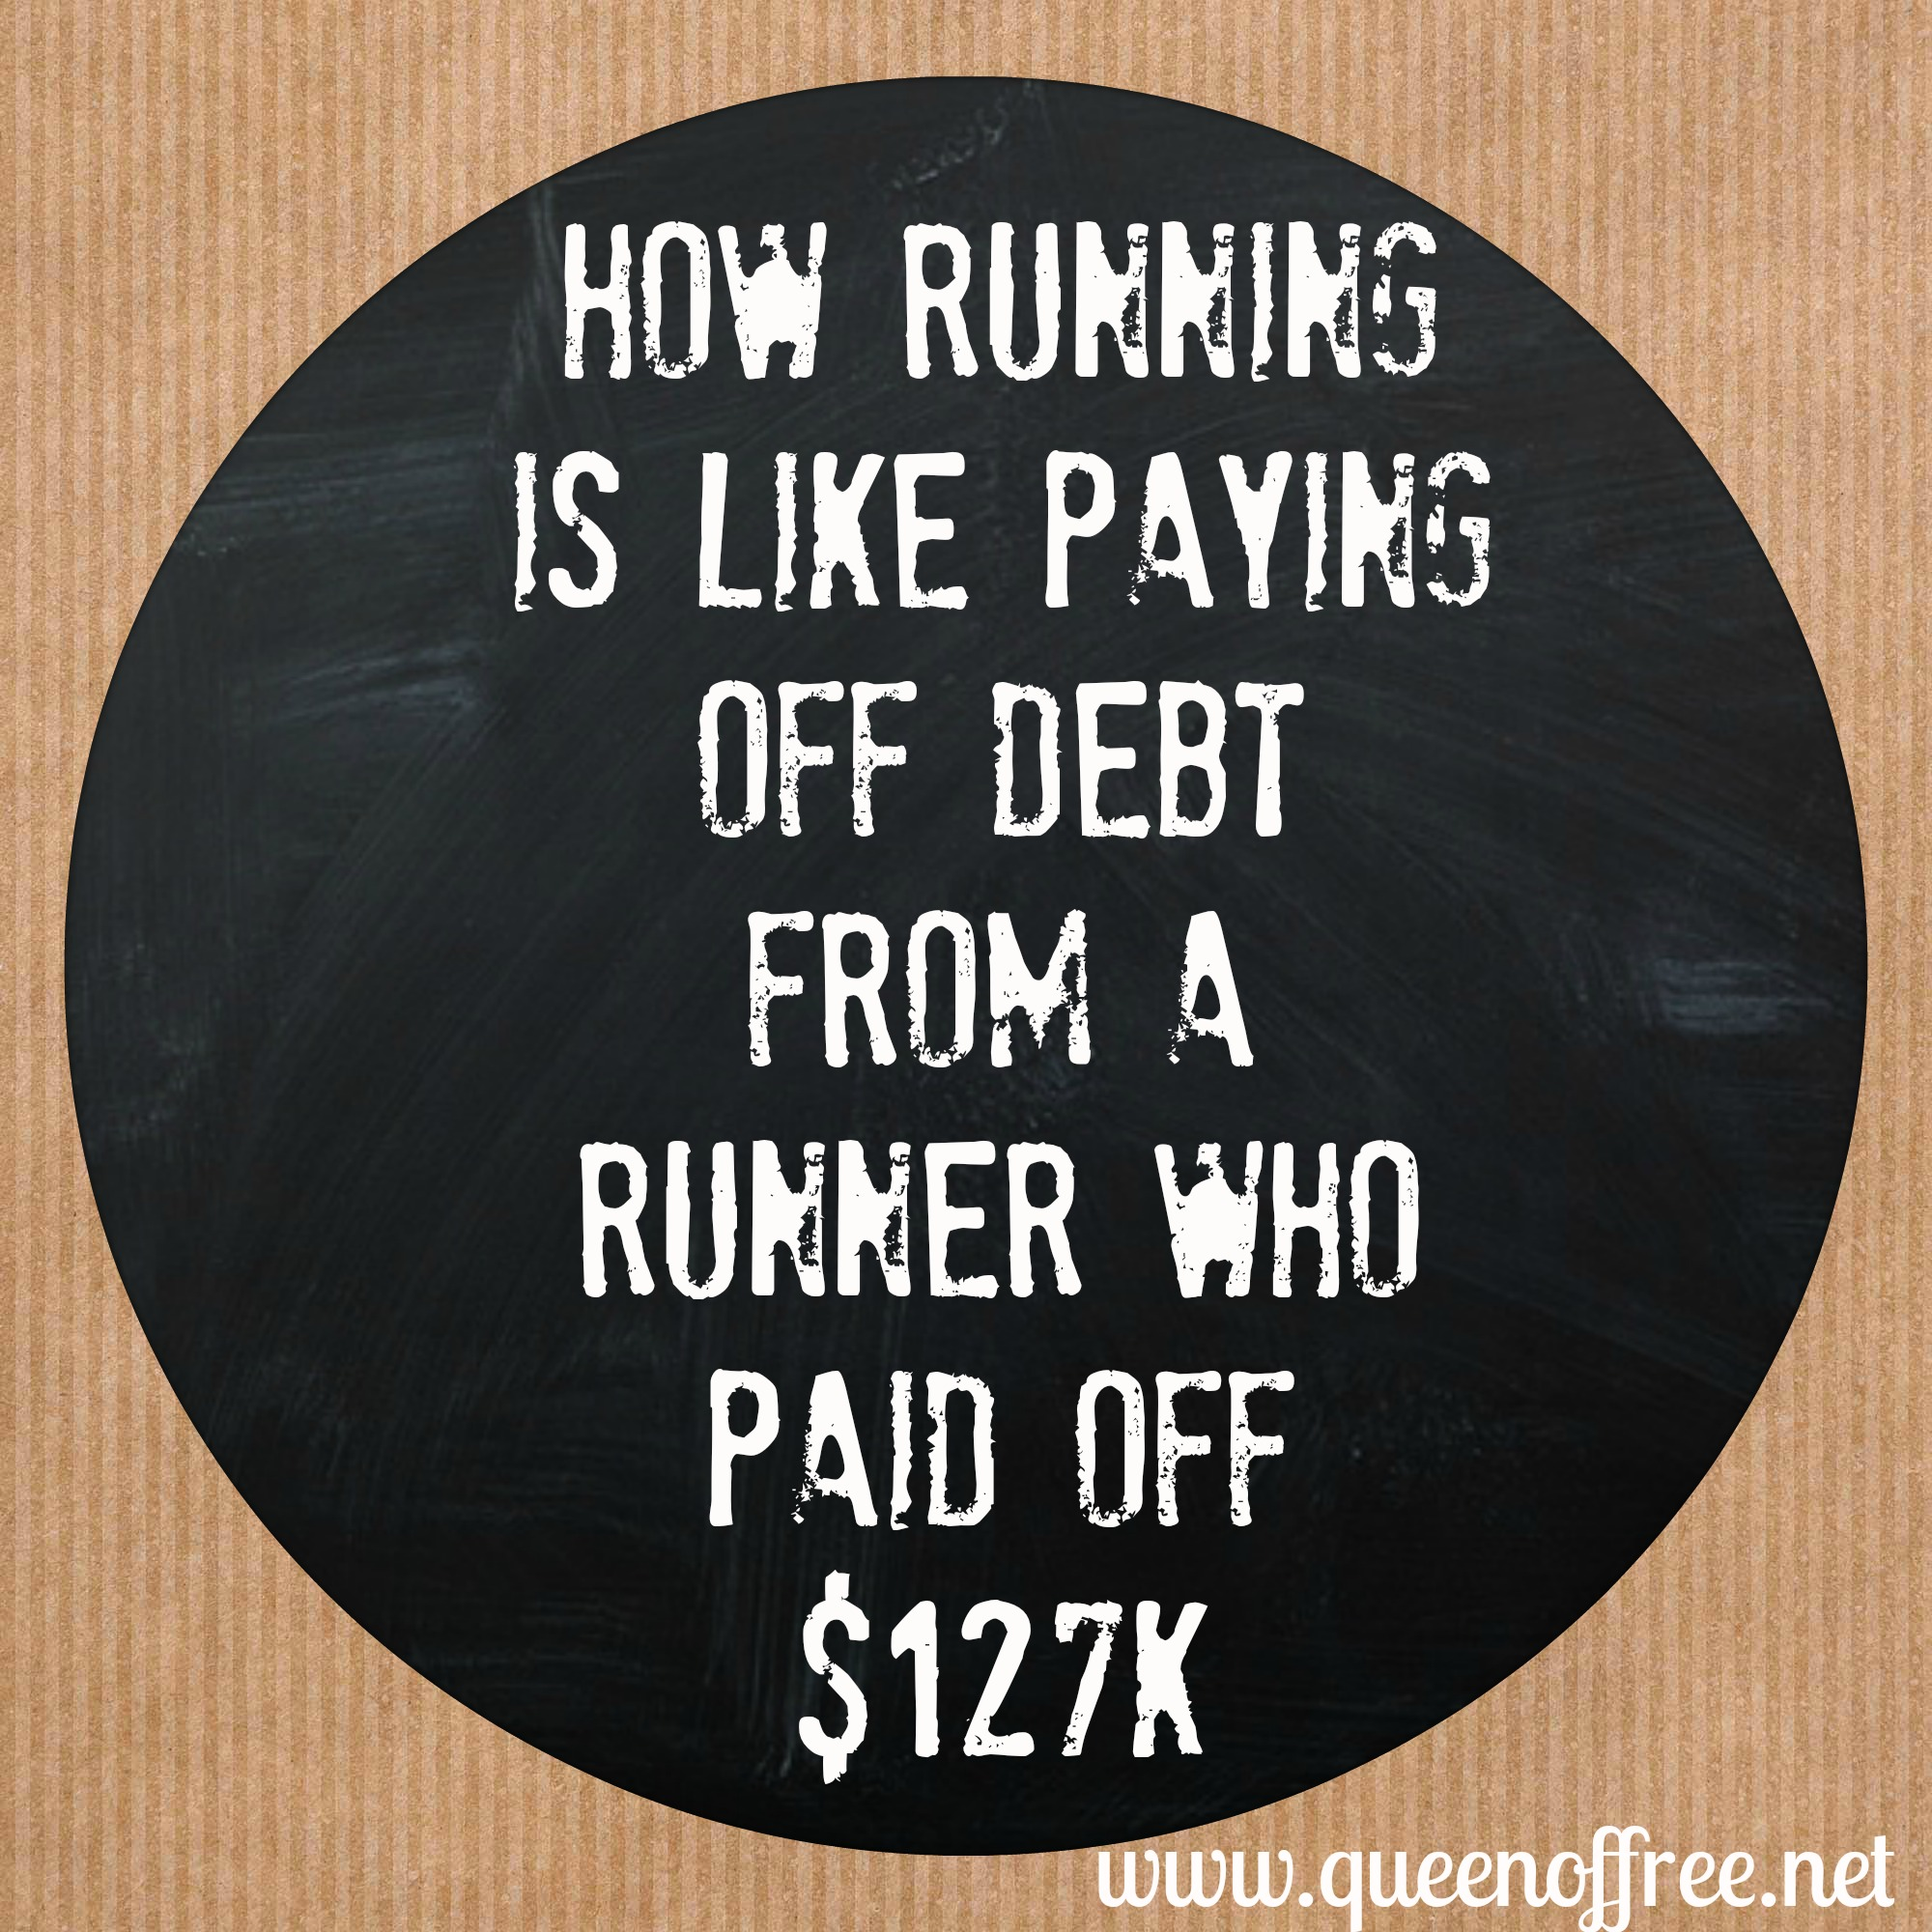 Observations from @thequeenoffree on how running is a lot like paying off debt.